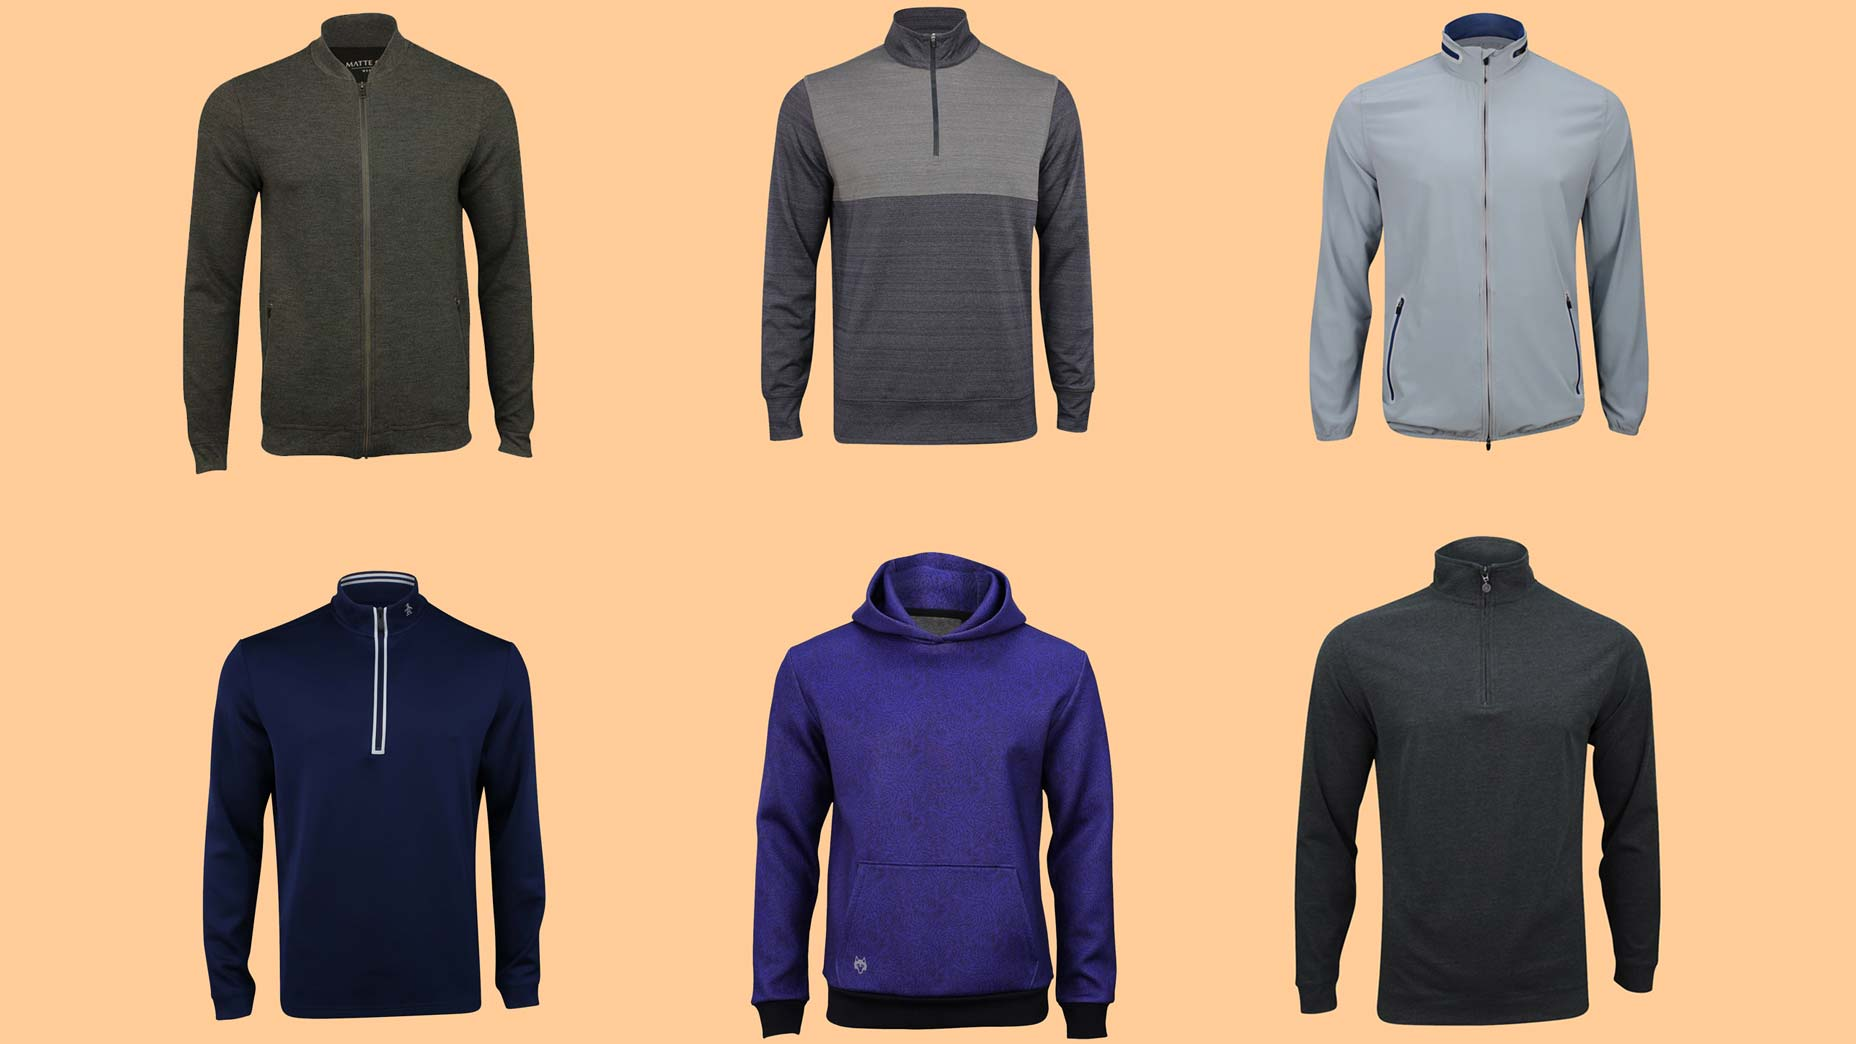 Golf pullovers and jacket